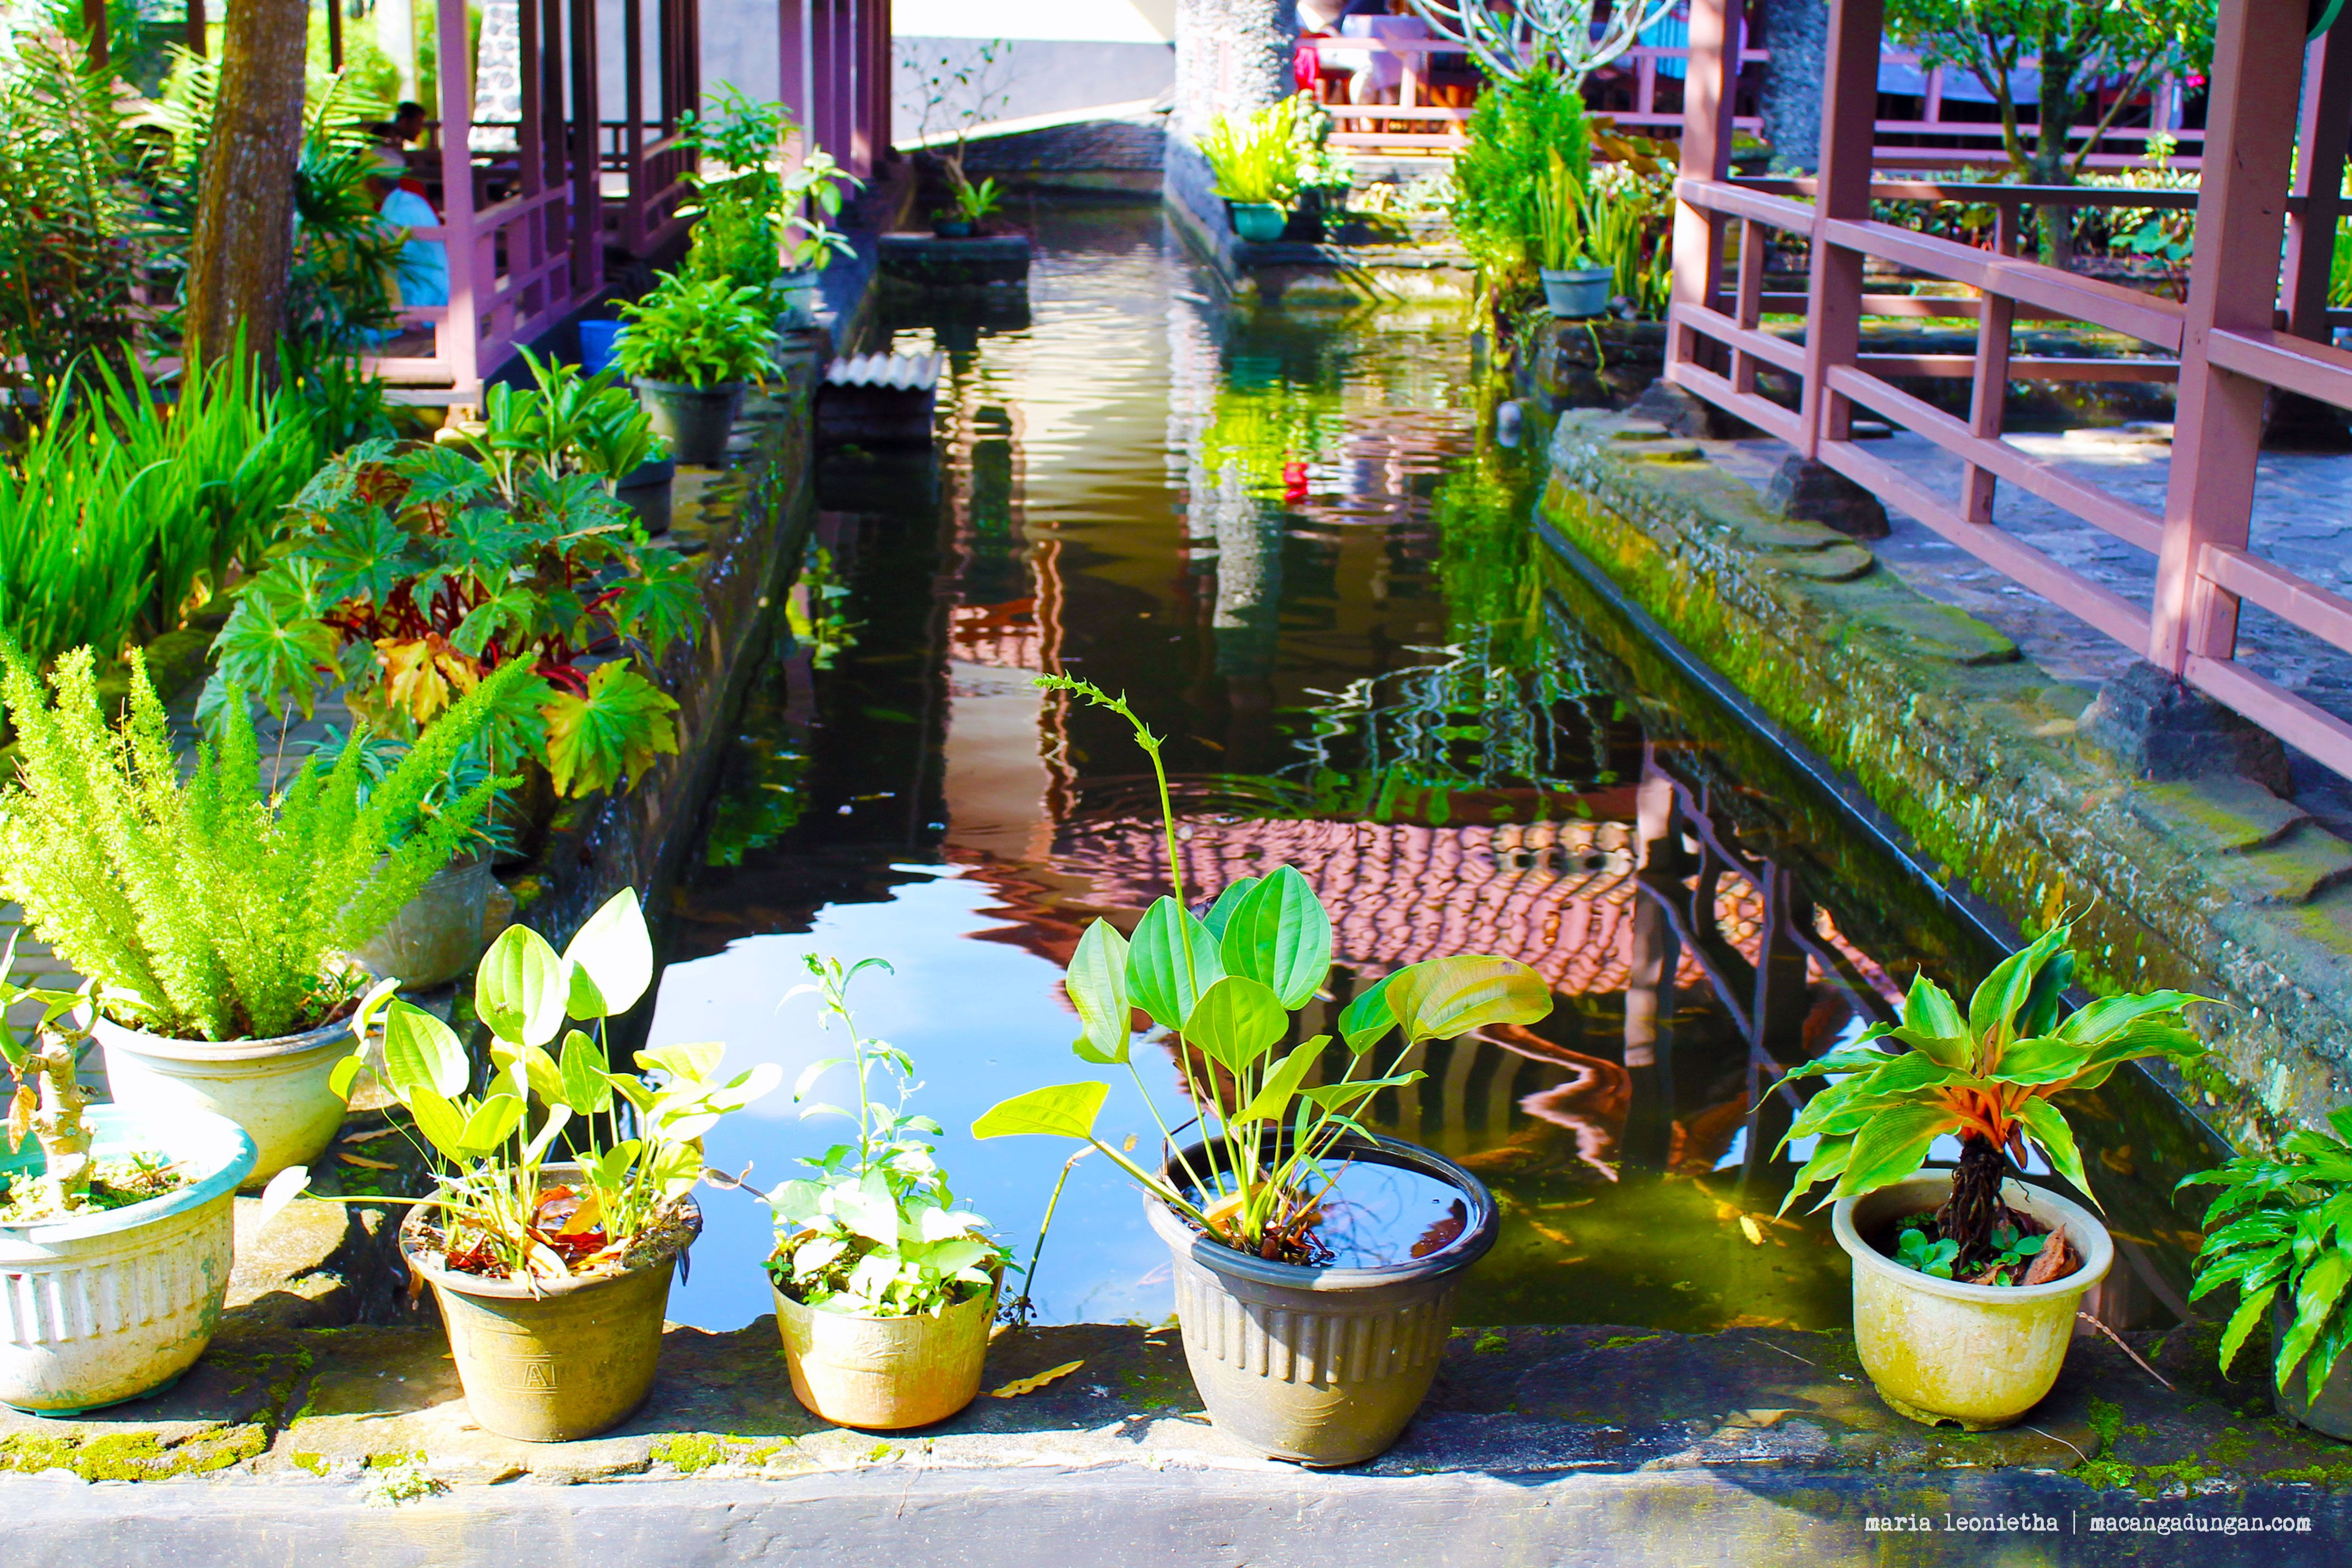 Fish pond in a restaurant, located at Ciamis. Yogyakarta